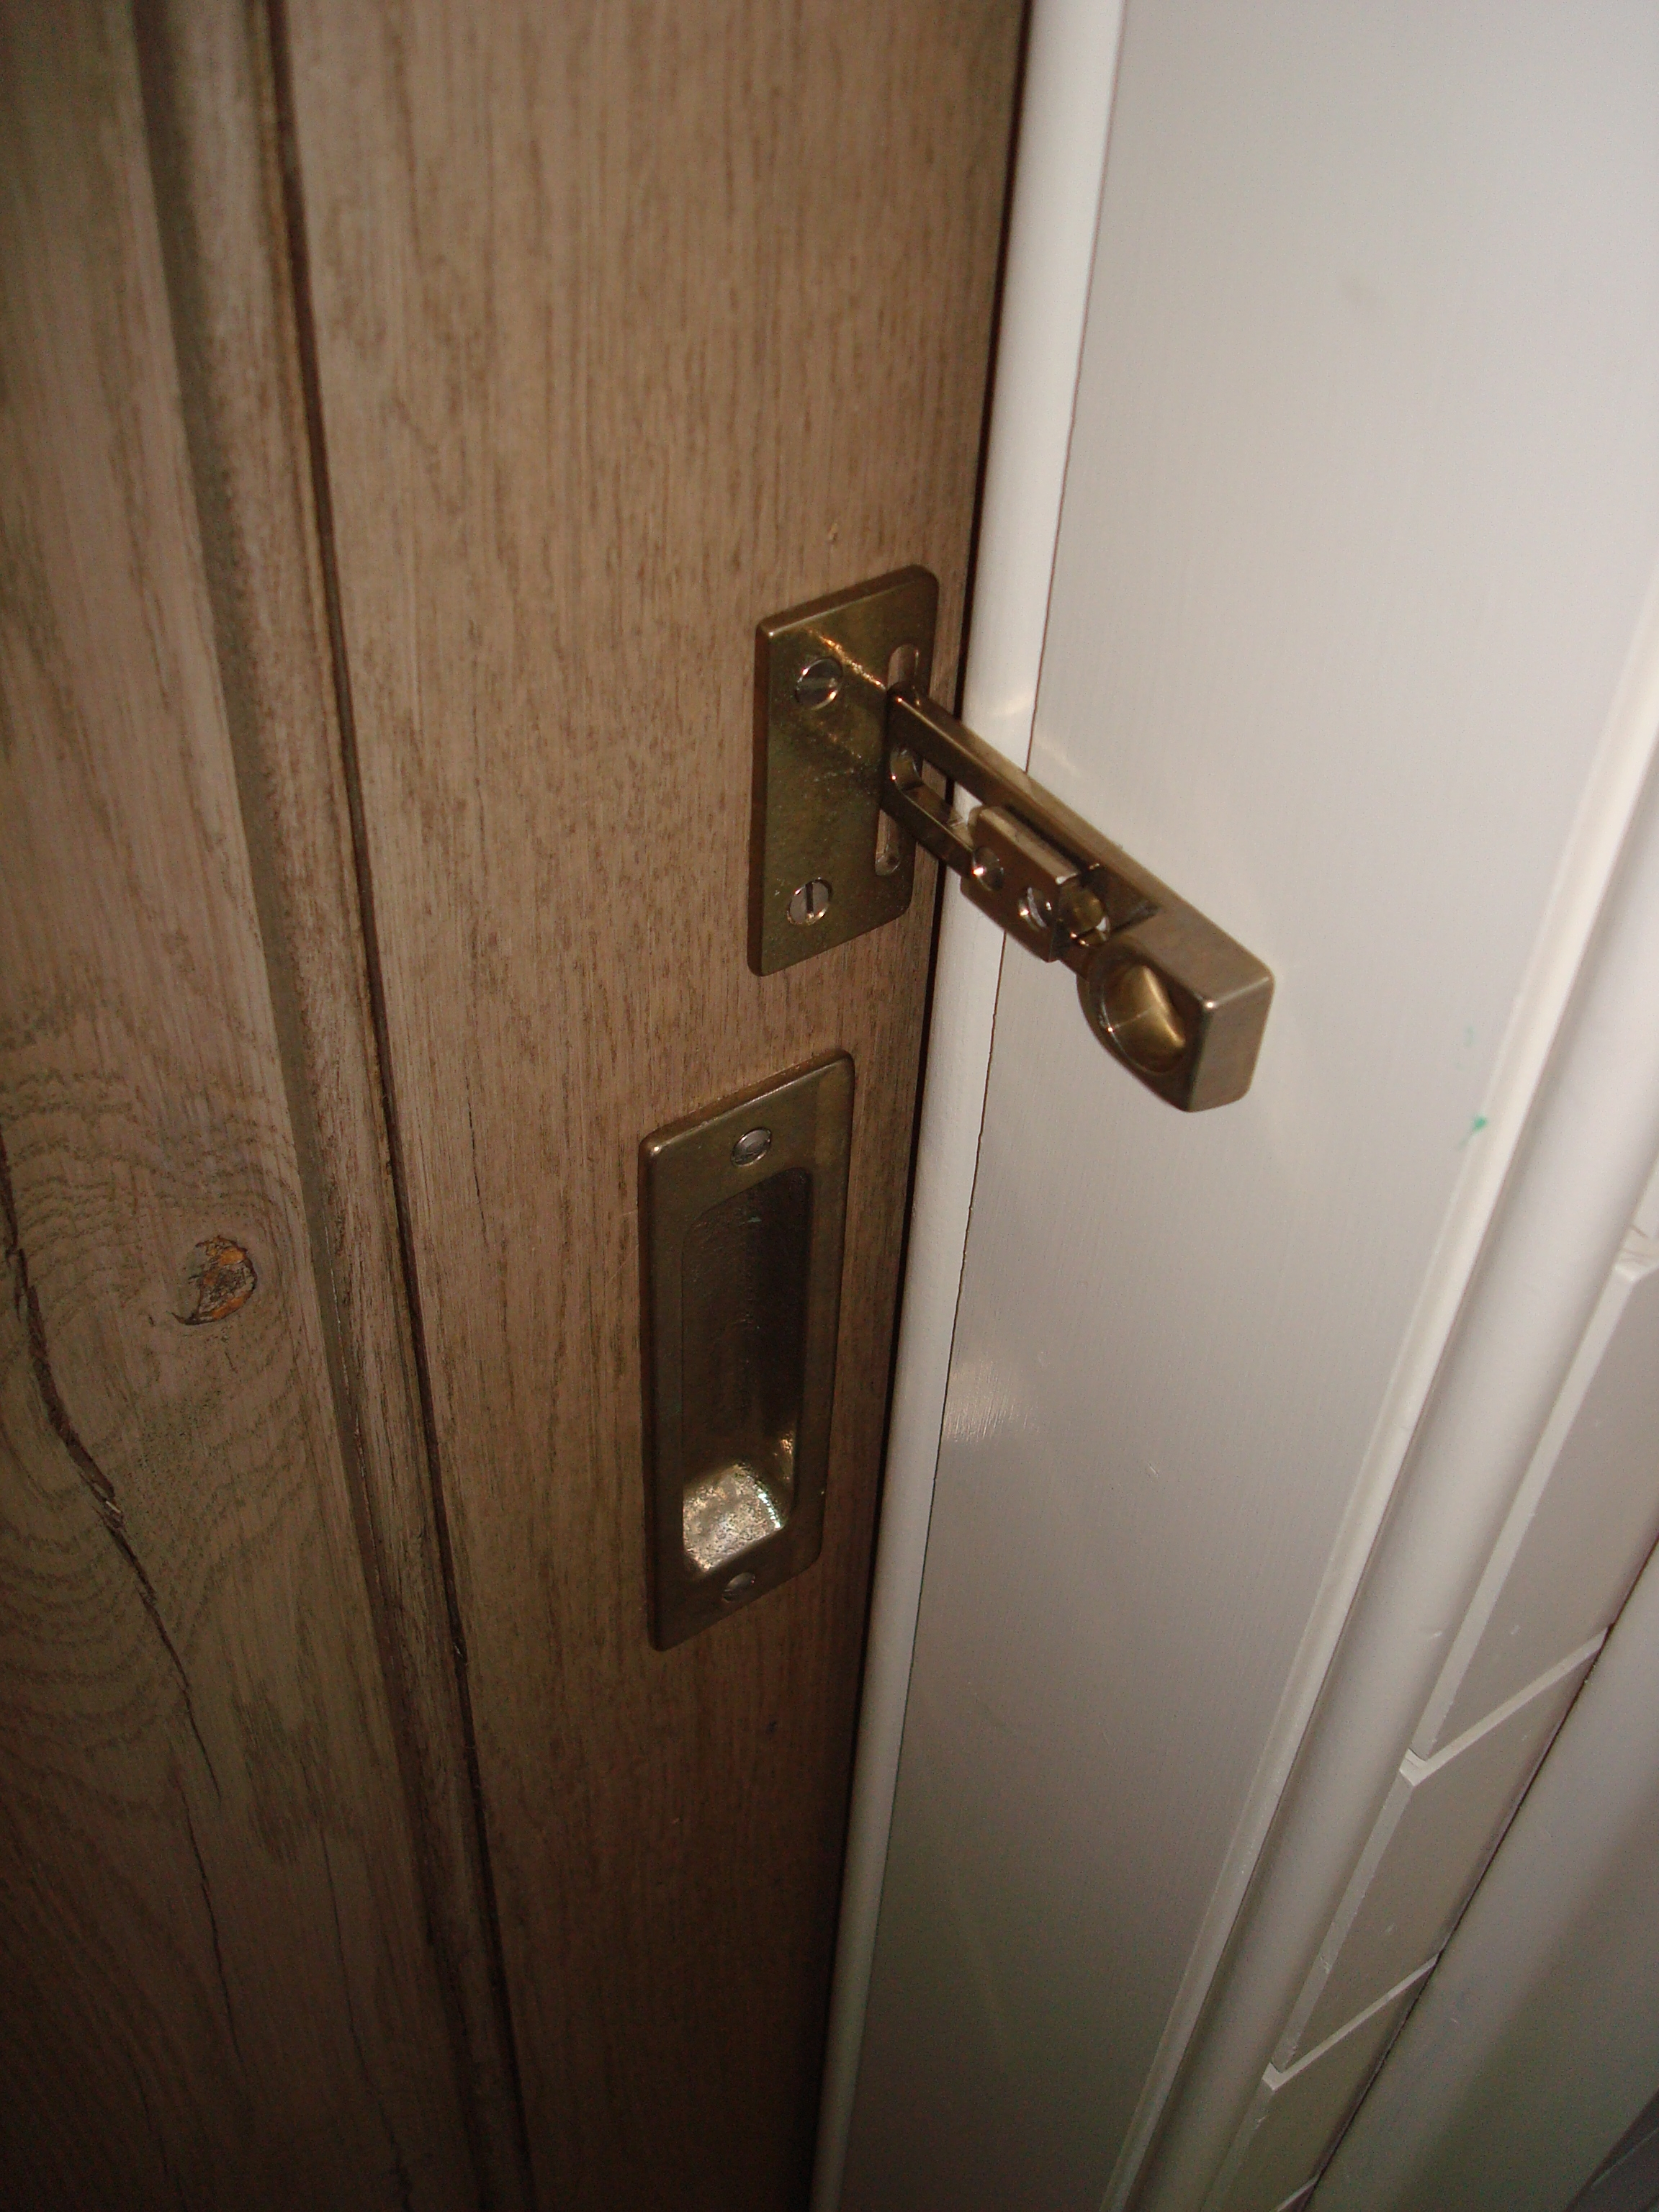 Permalink to Barn Door Bathroom Lock